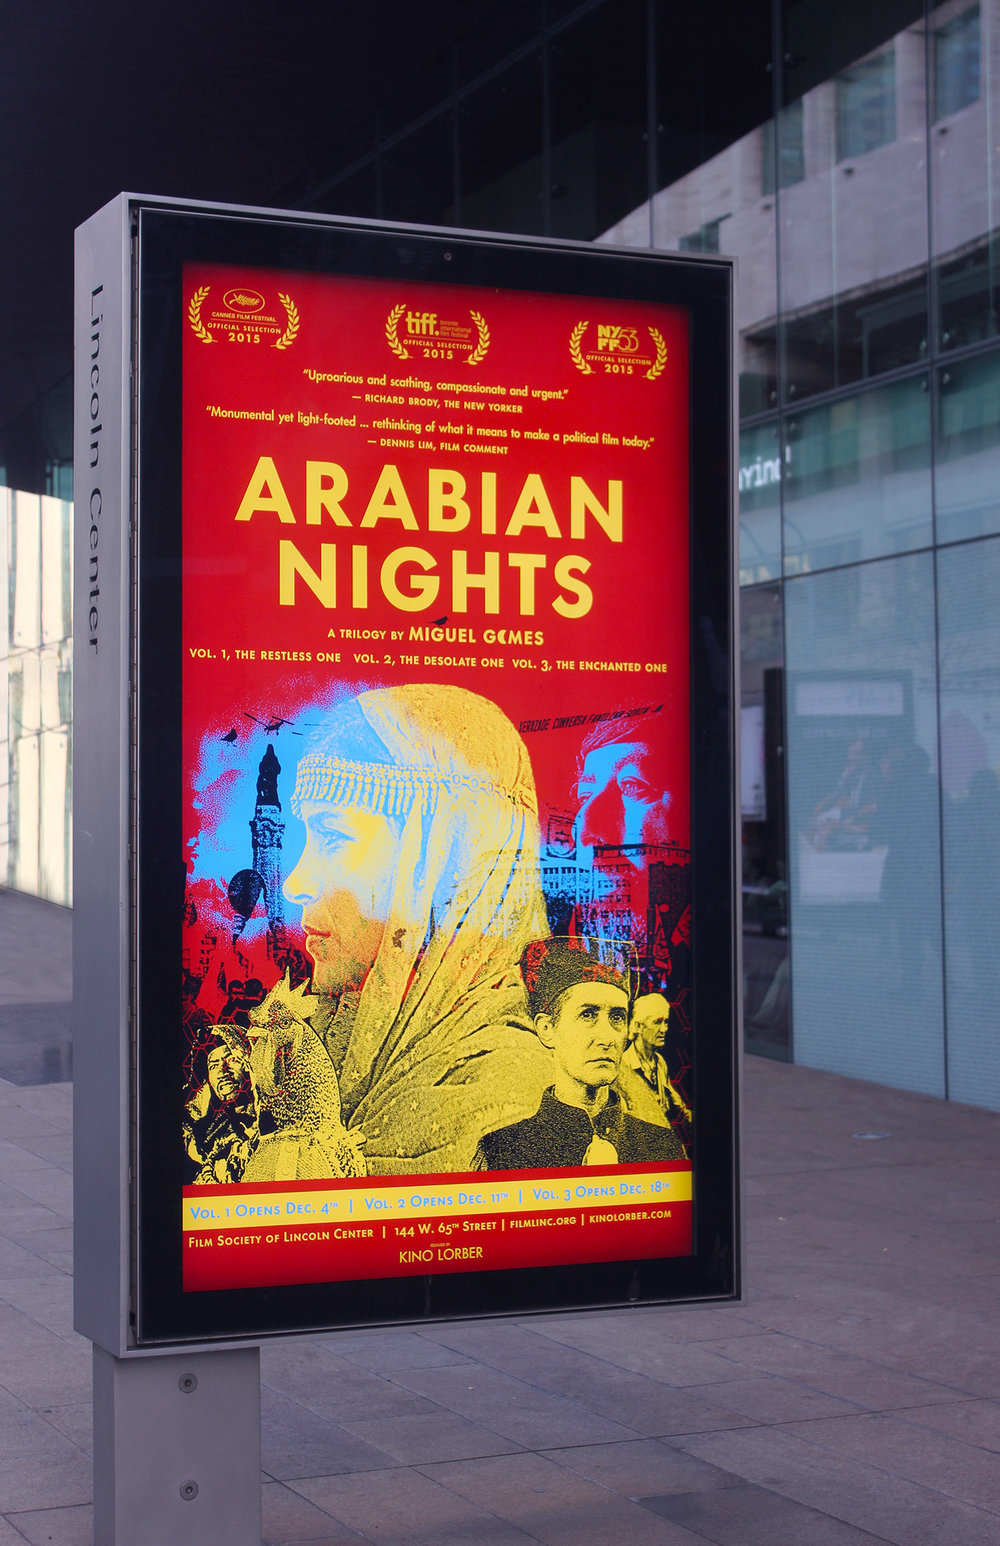 ArabianNights_PosterDisplay_vertical_web.jpg